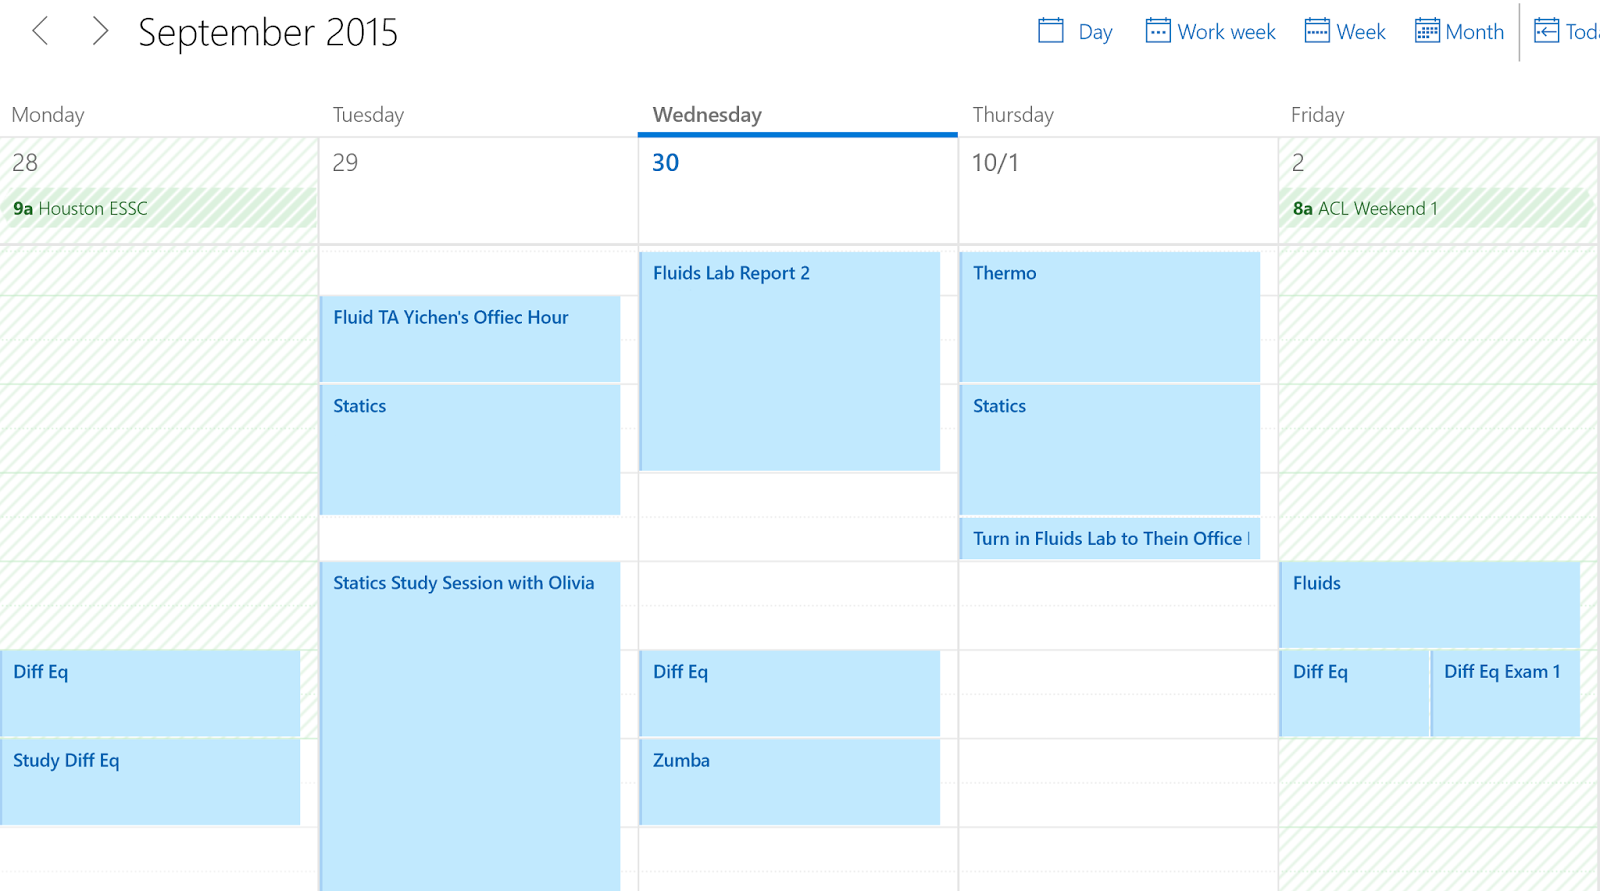 windows 10 google calendar schedule